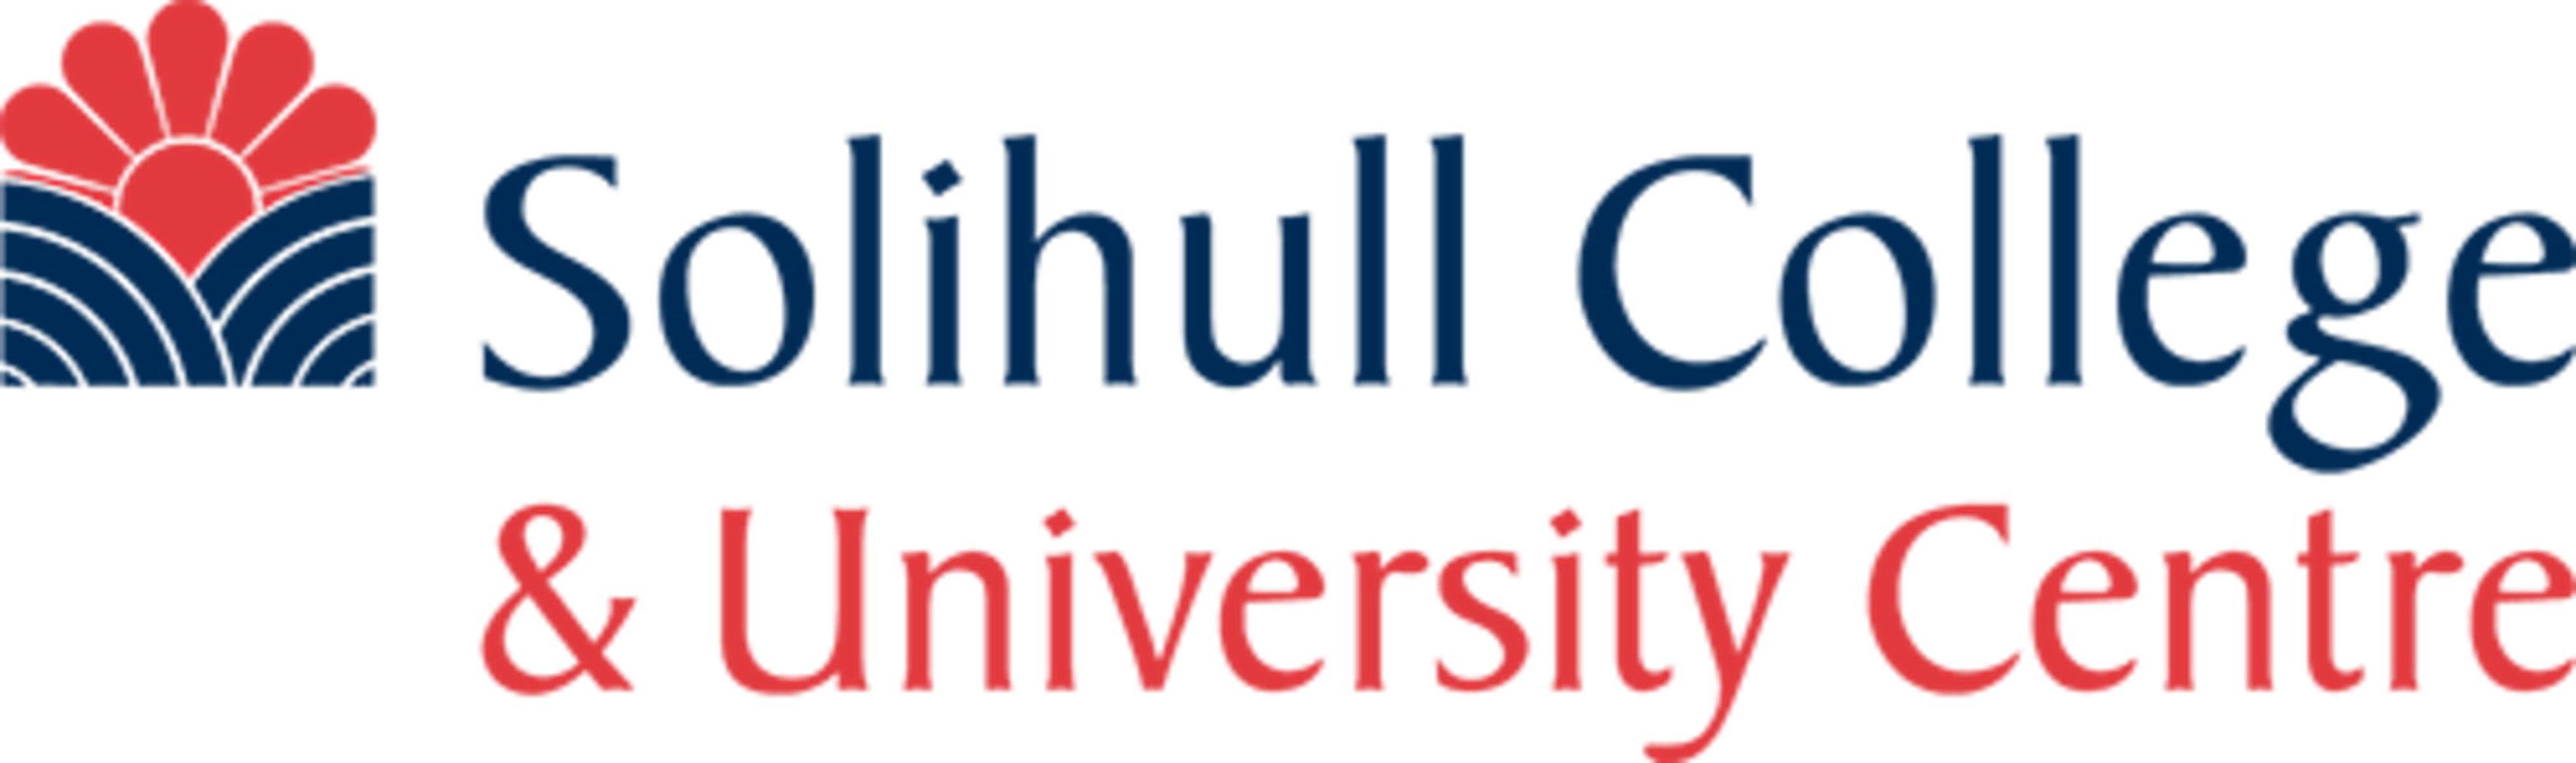 Due to Department Closure on Behalf of Solihull College & University Centre, Including catering equipment